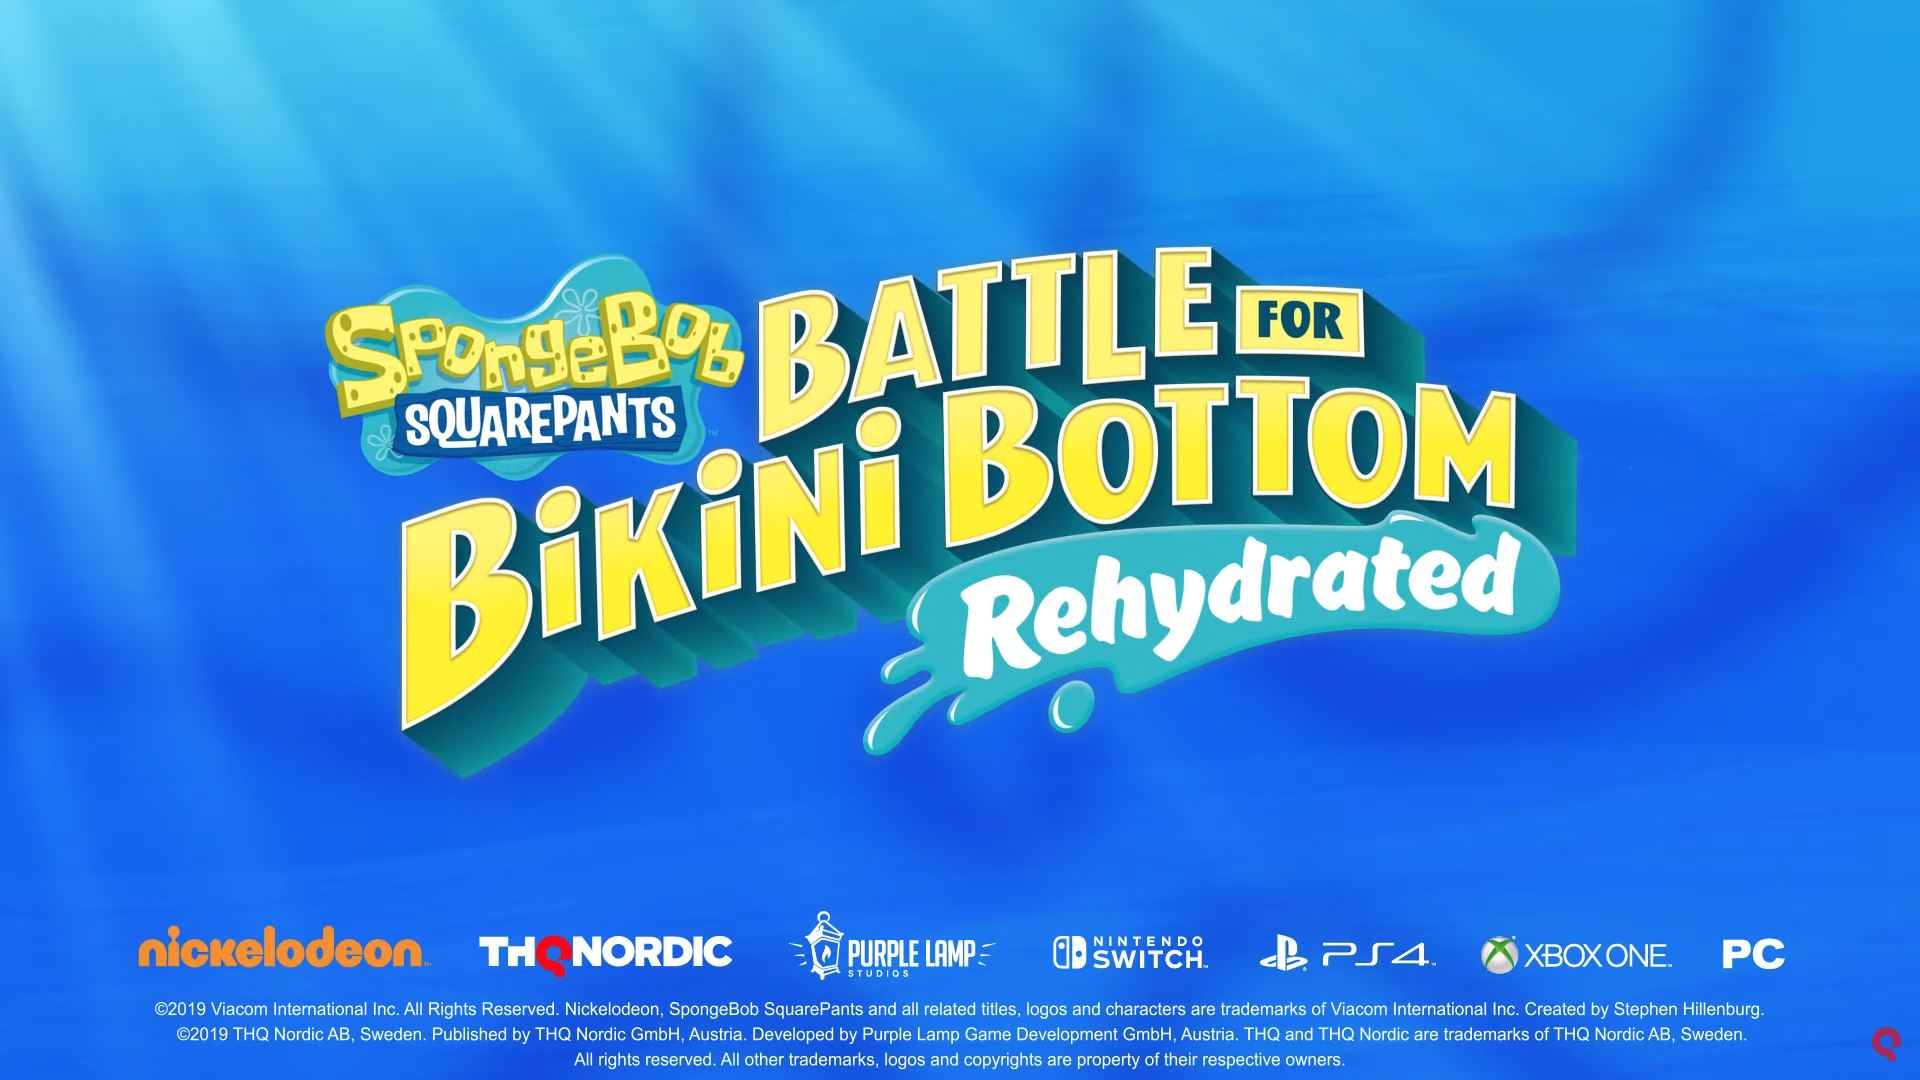 THQ Nordic confirmed one of this week's three releases to be SpongeBob SquarePants: Battle for Bikini Bottom Rehydrated.